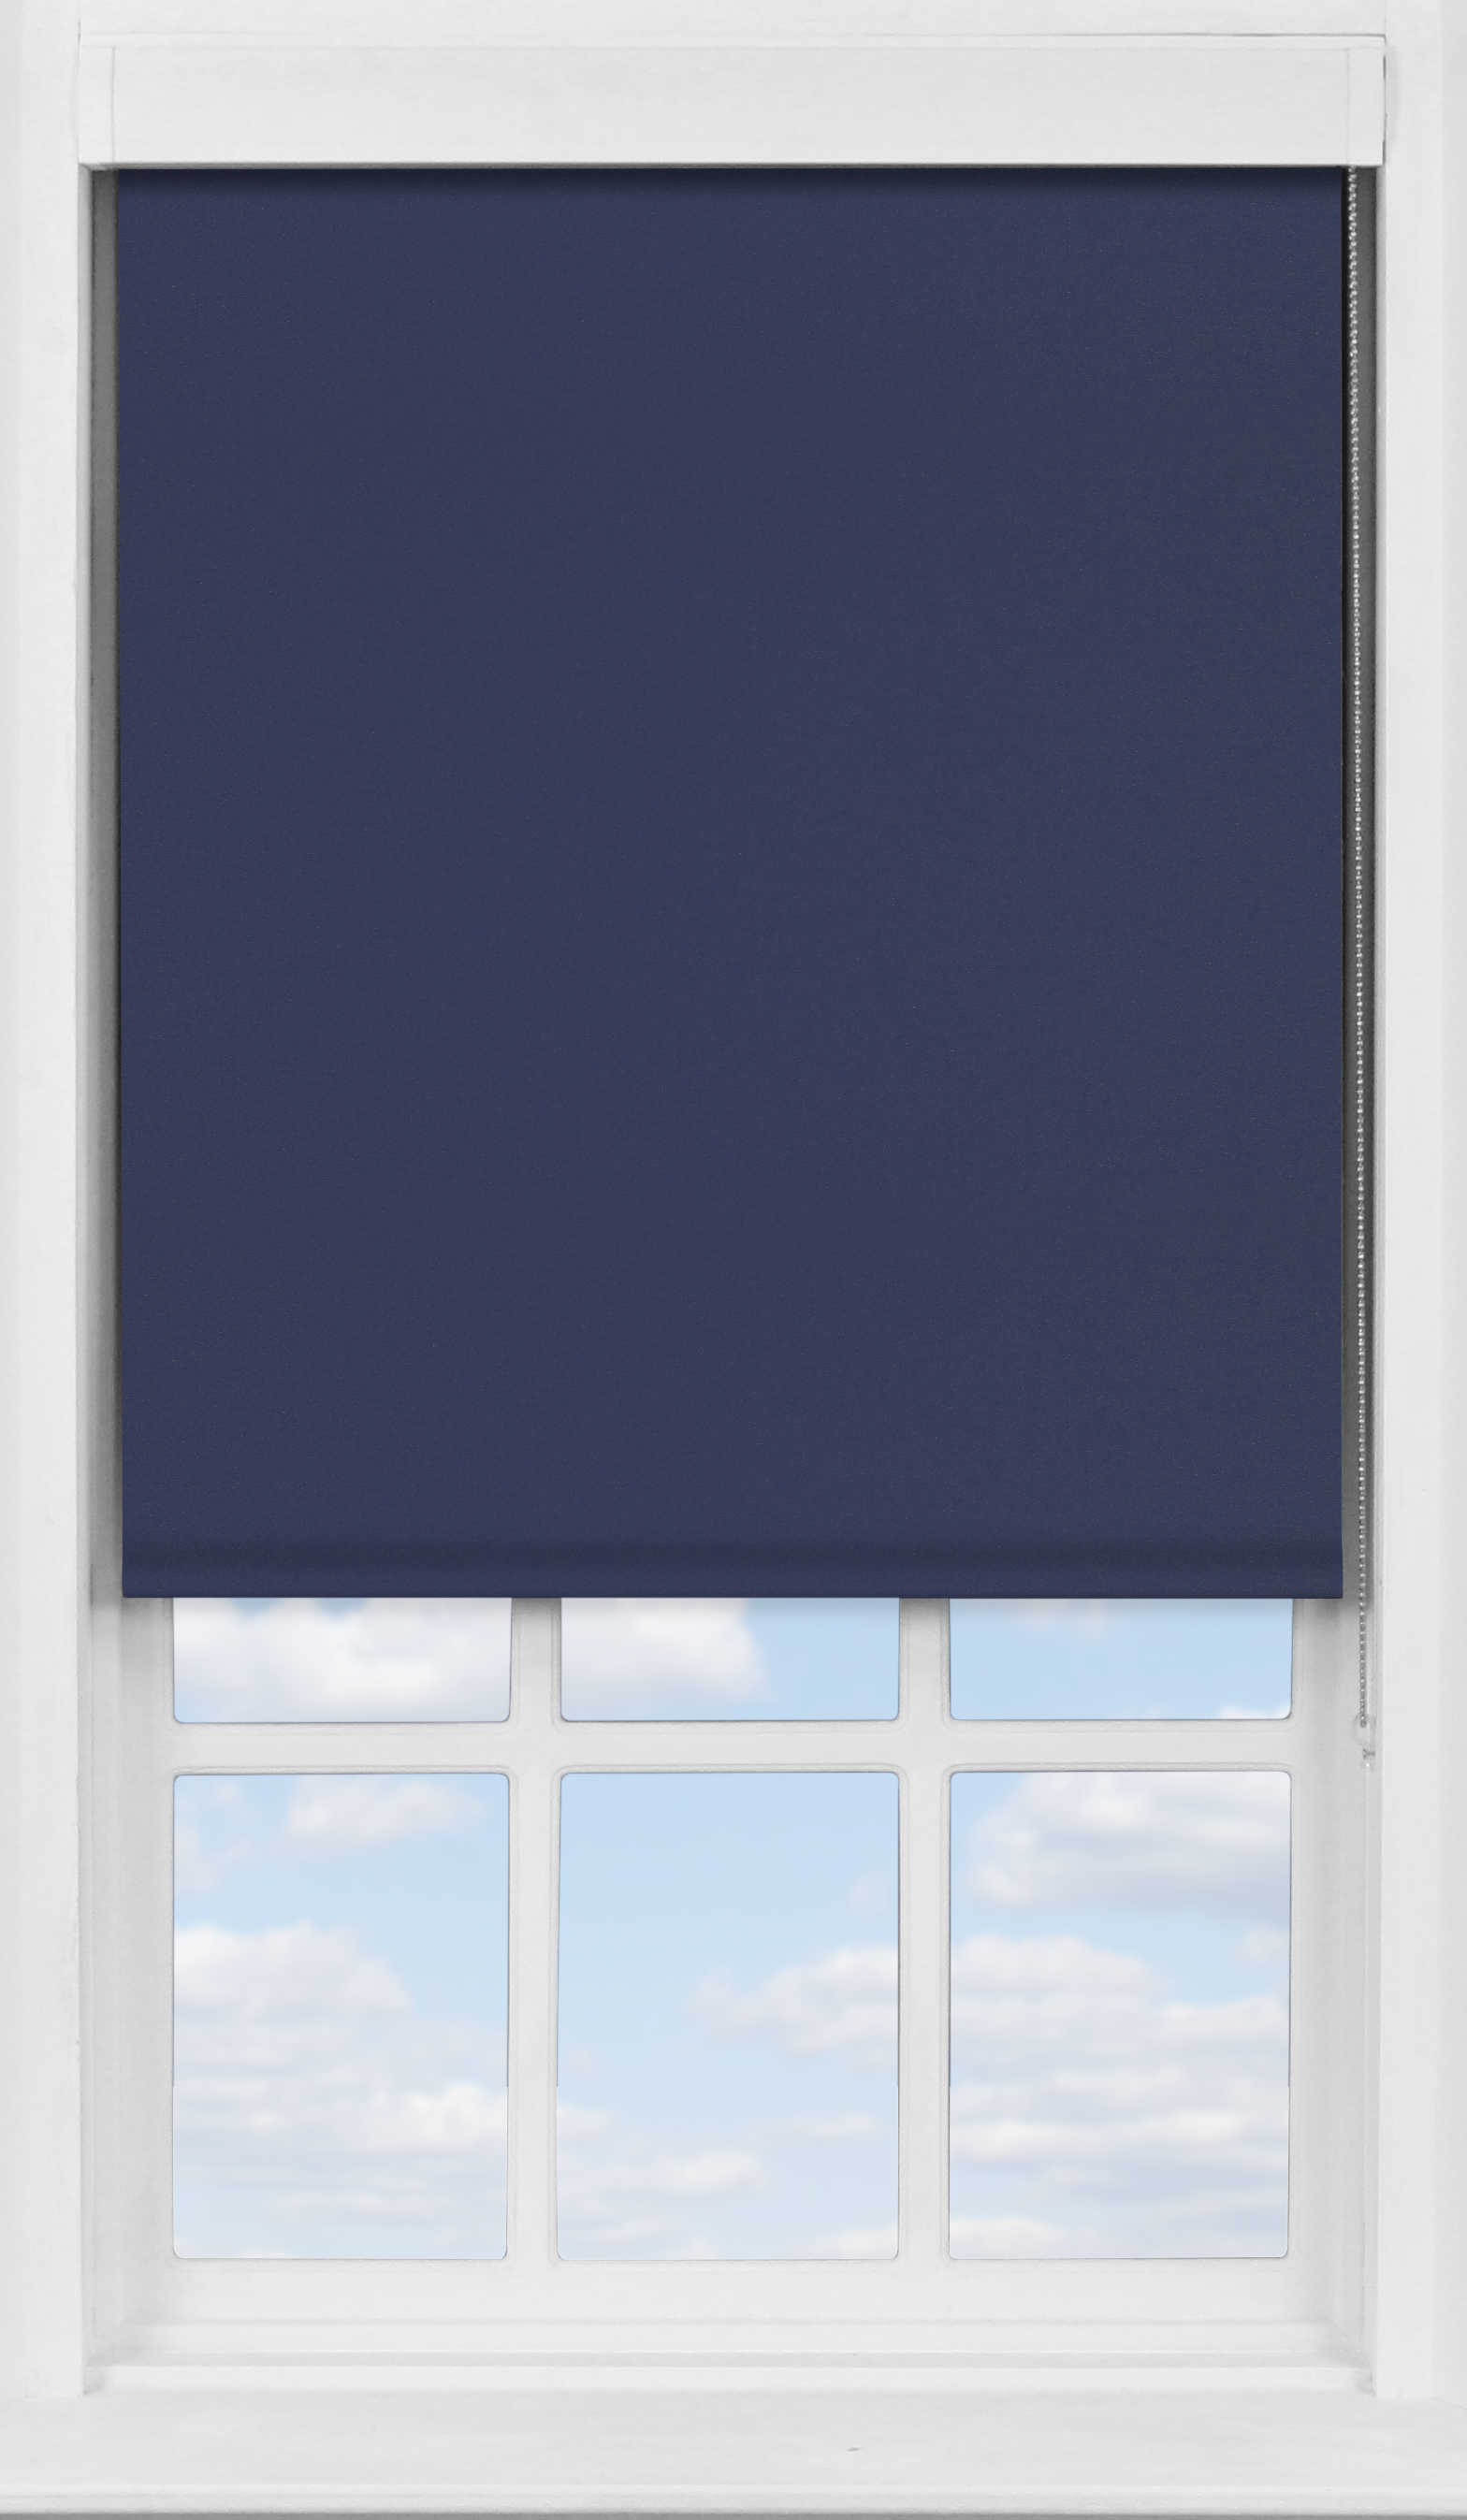 Premium Roller Blind in True Navy Blackout